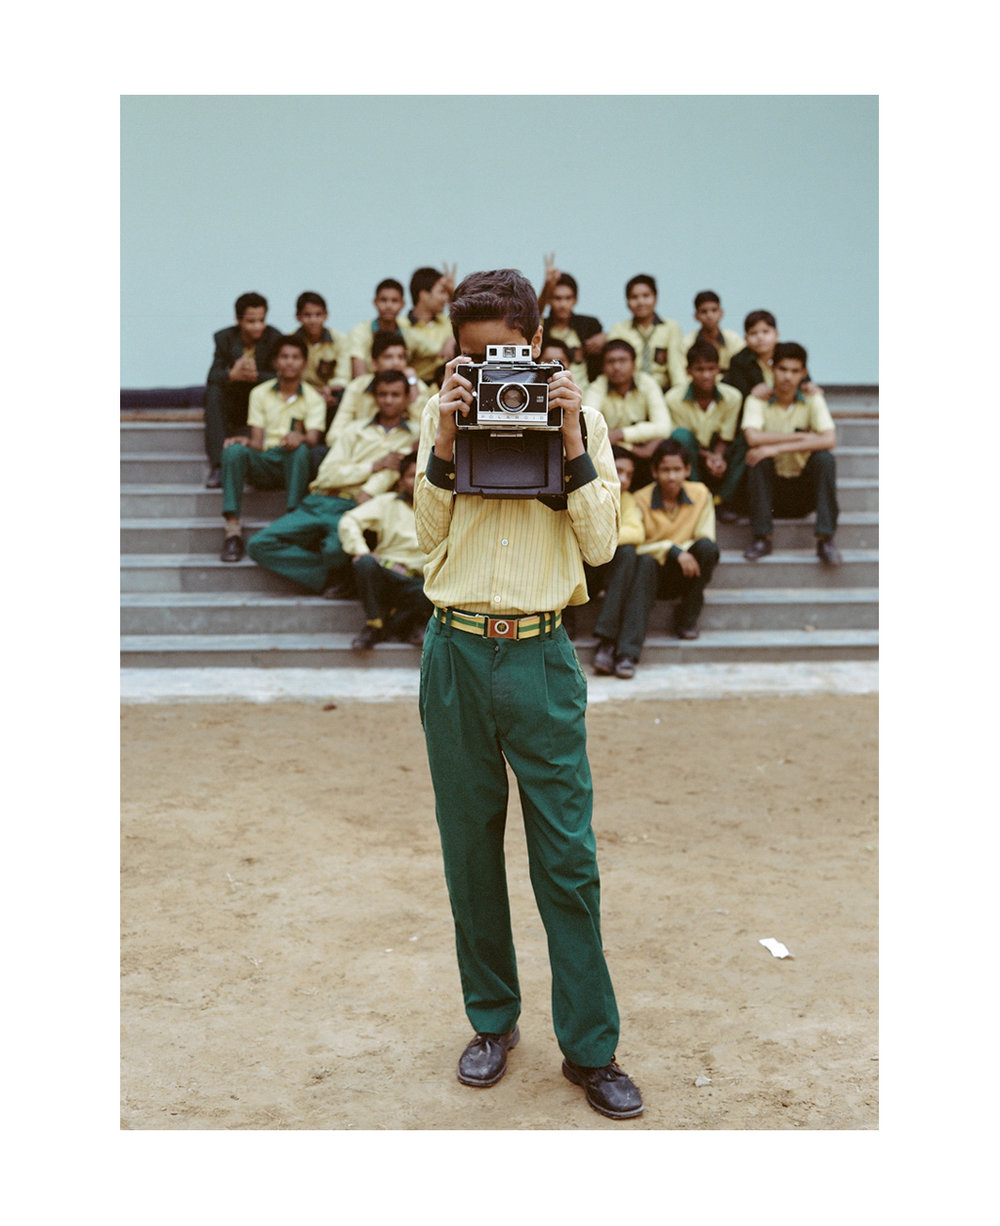 Photography students, Good Samaritan School, Delhi, India.